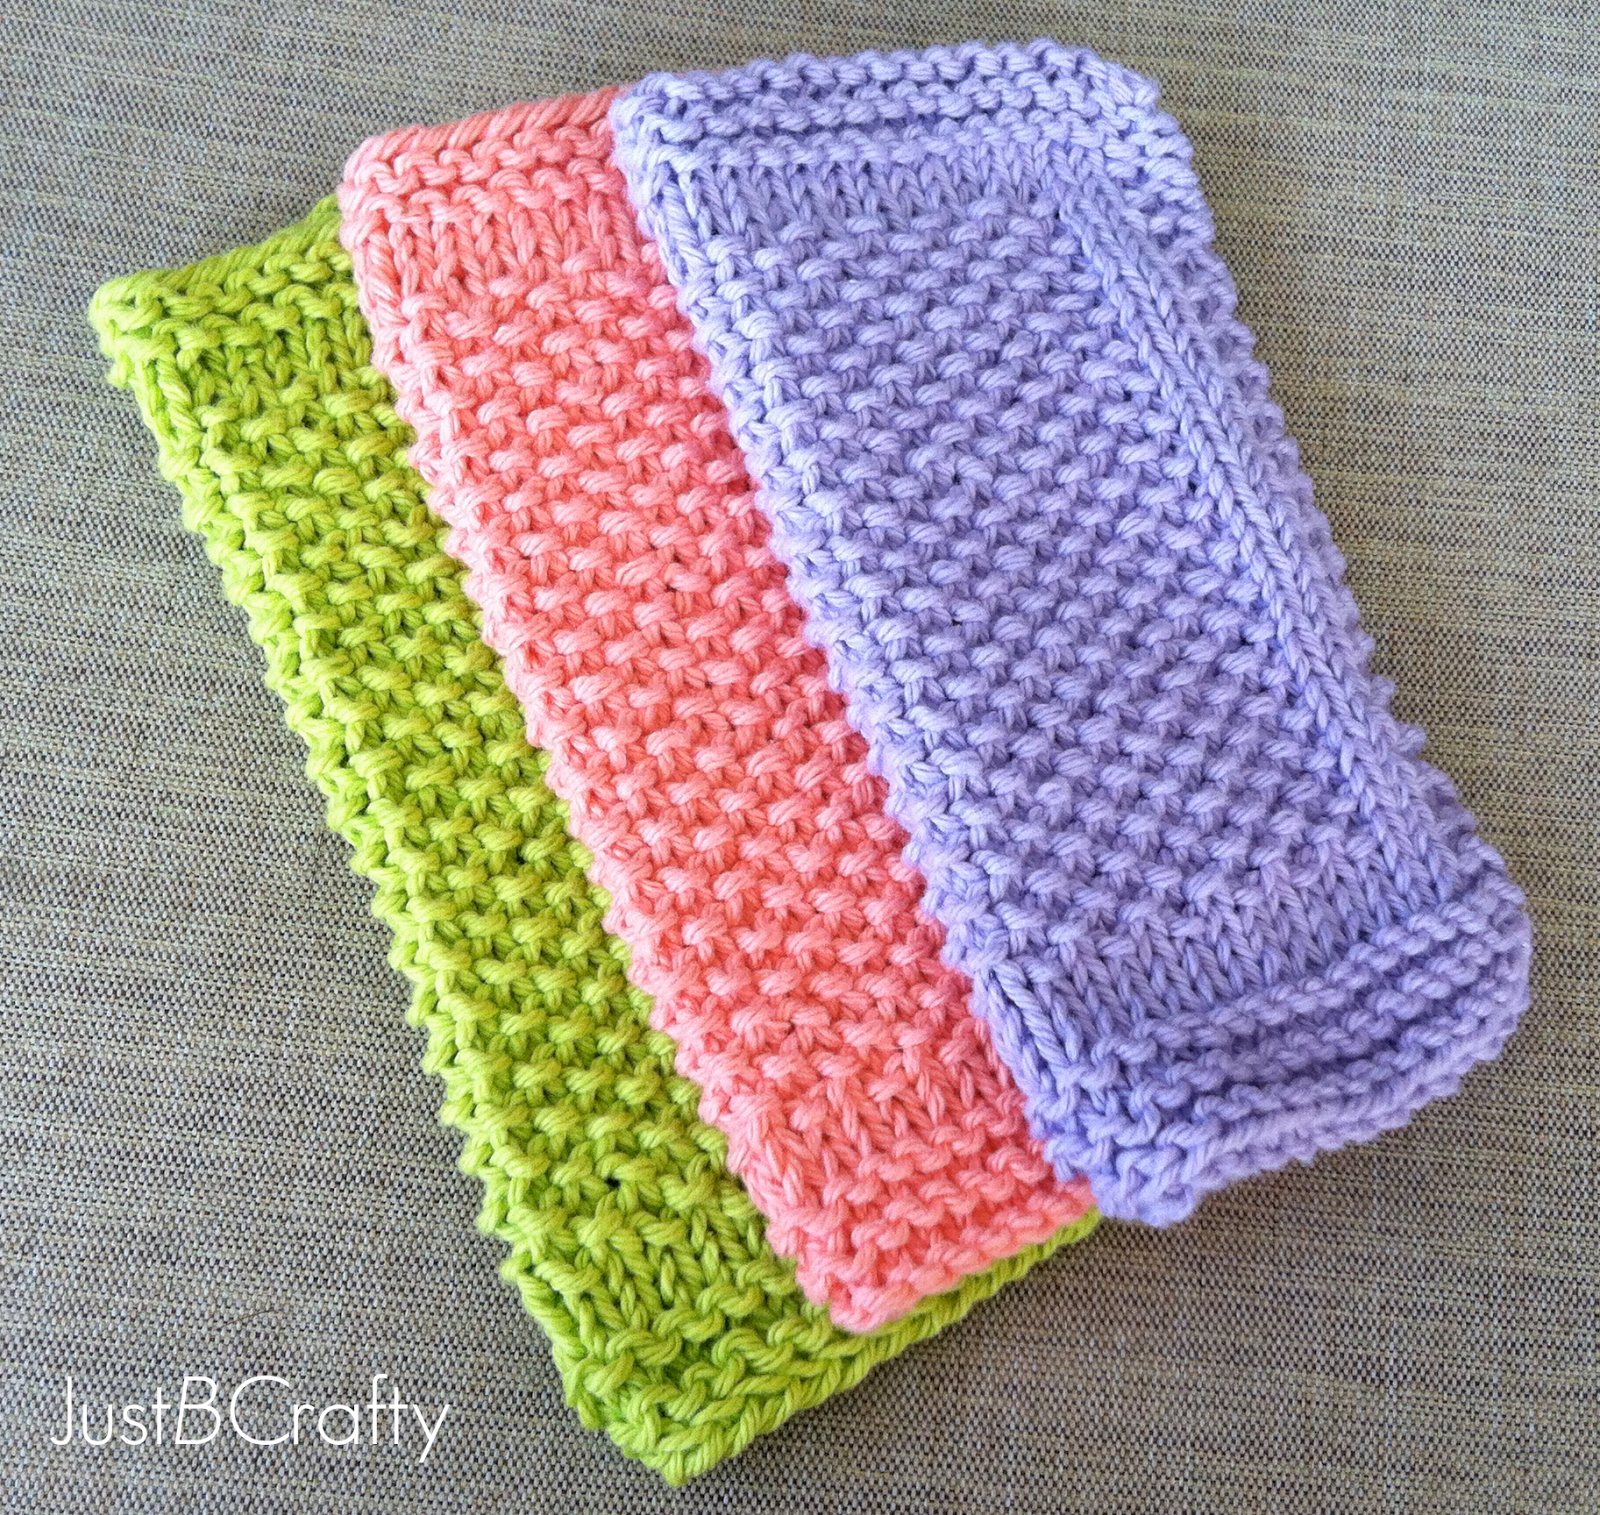 Knitting A Dishcloth Pattern Easy : Seed Stitch Dishcloths - Just Be Crafty